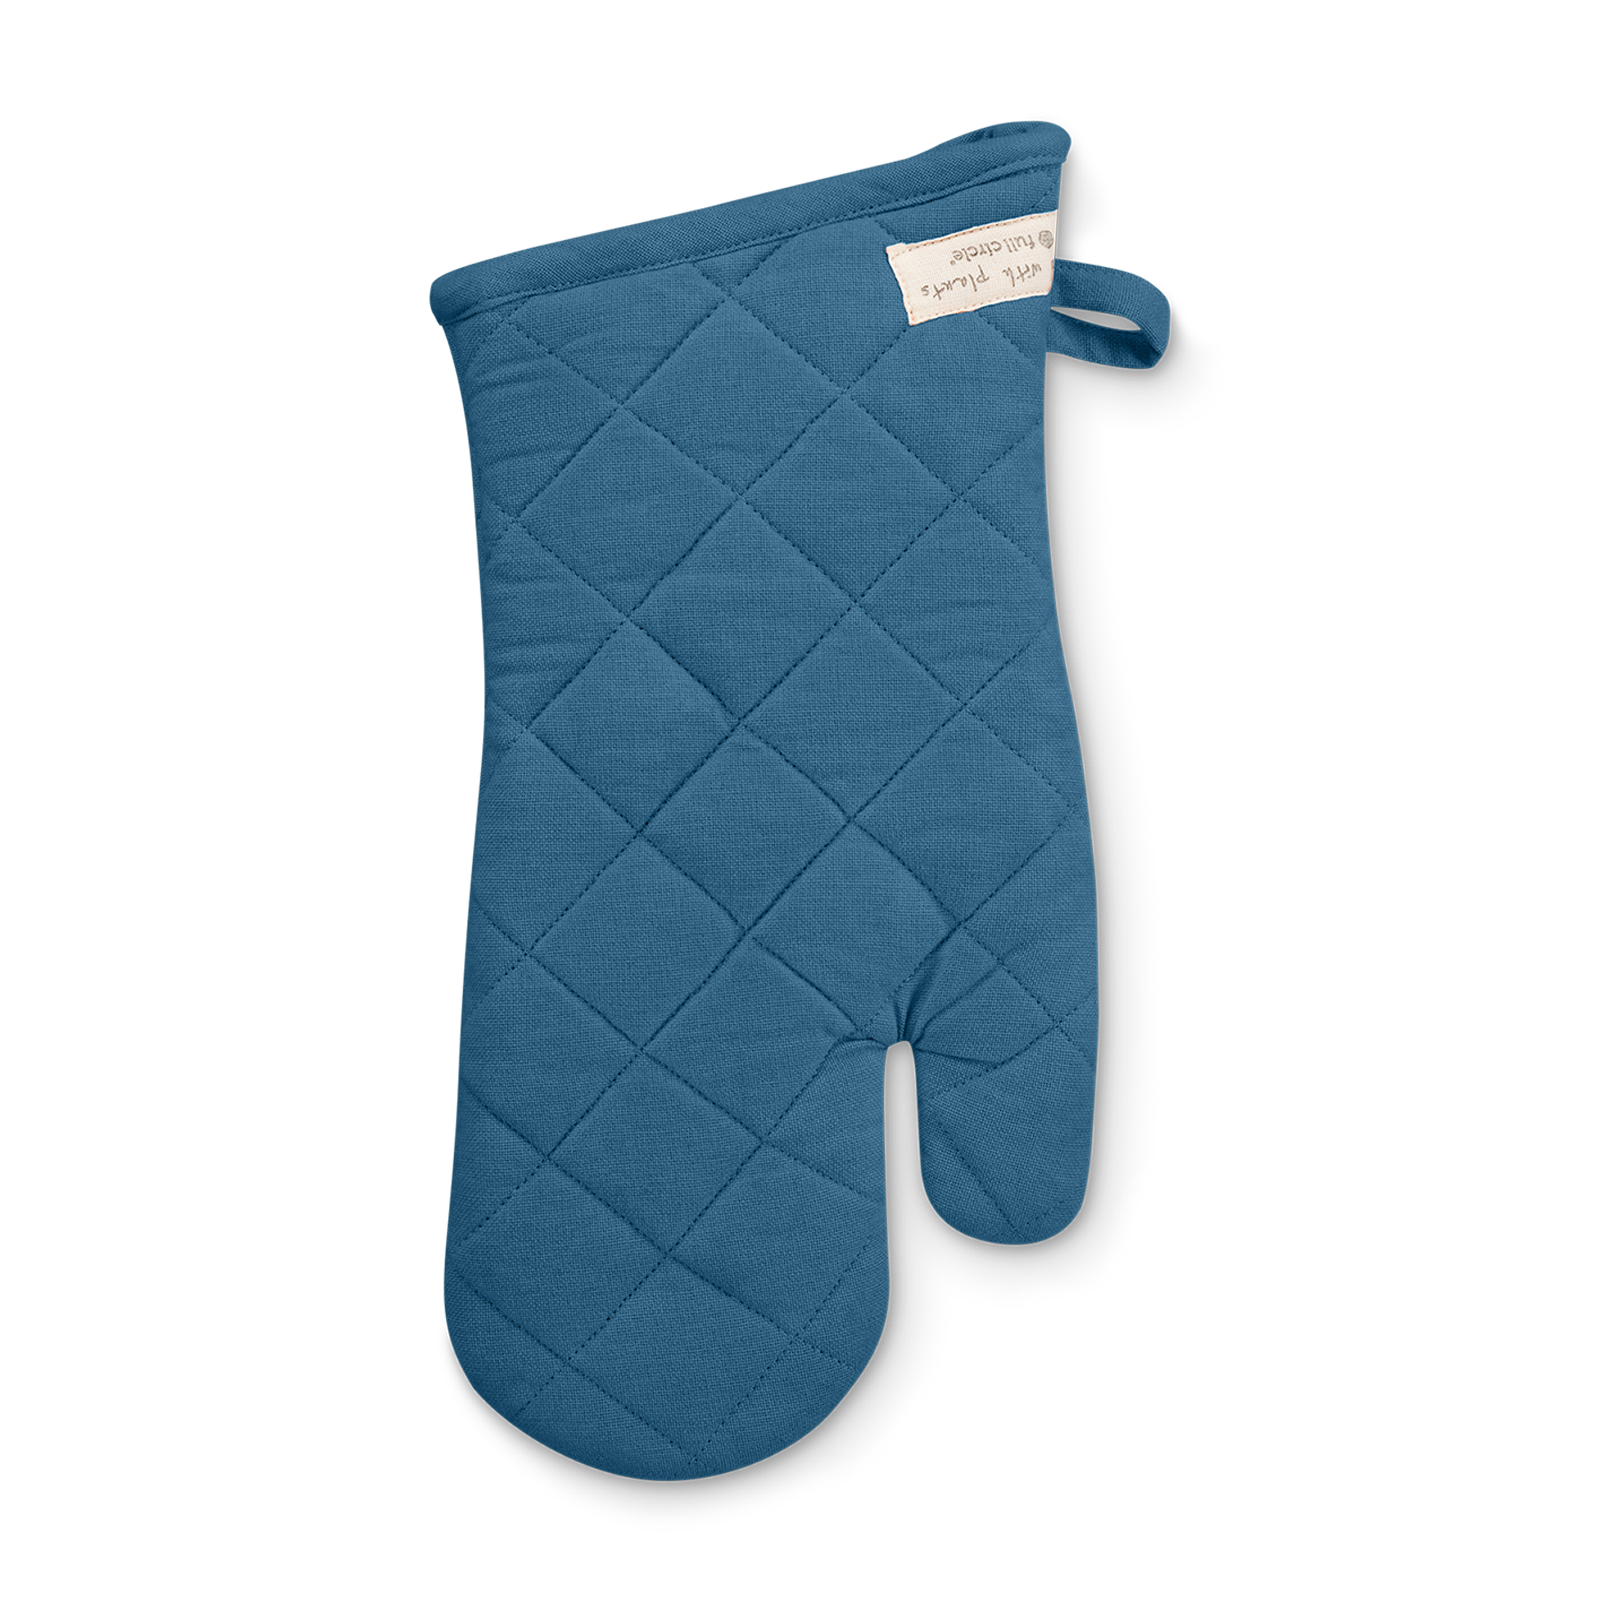 Oven mitt product picture